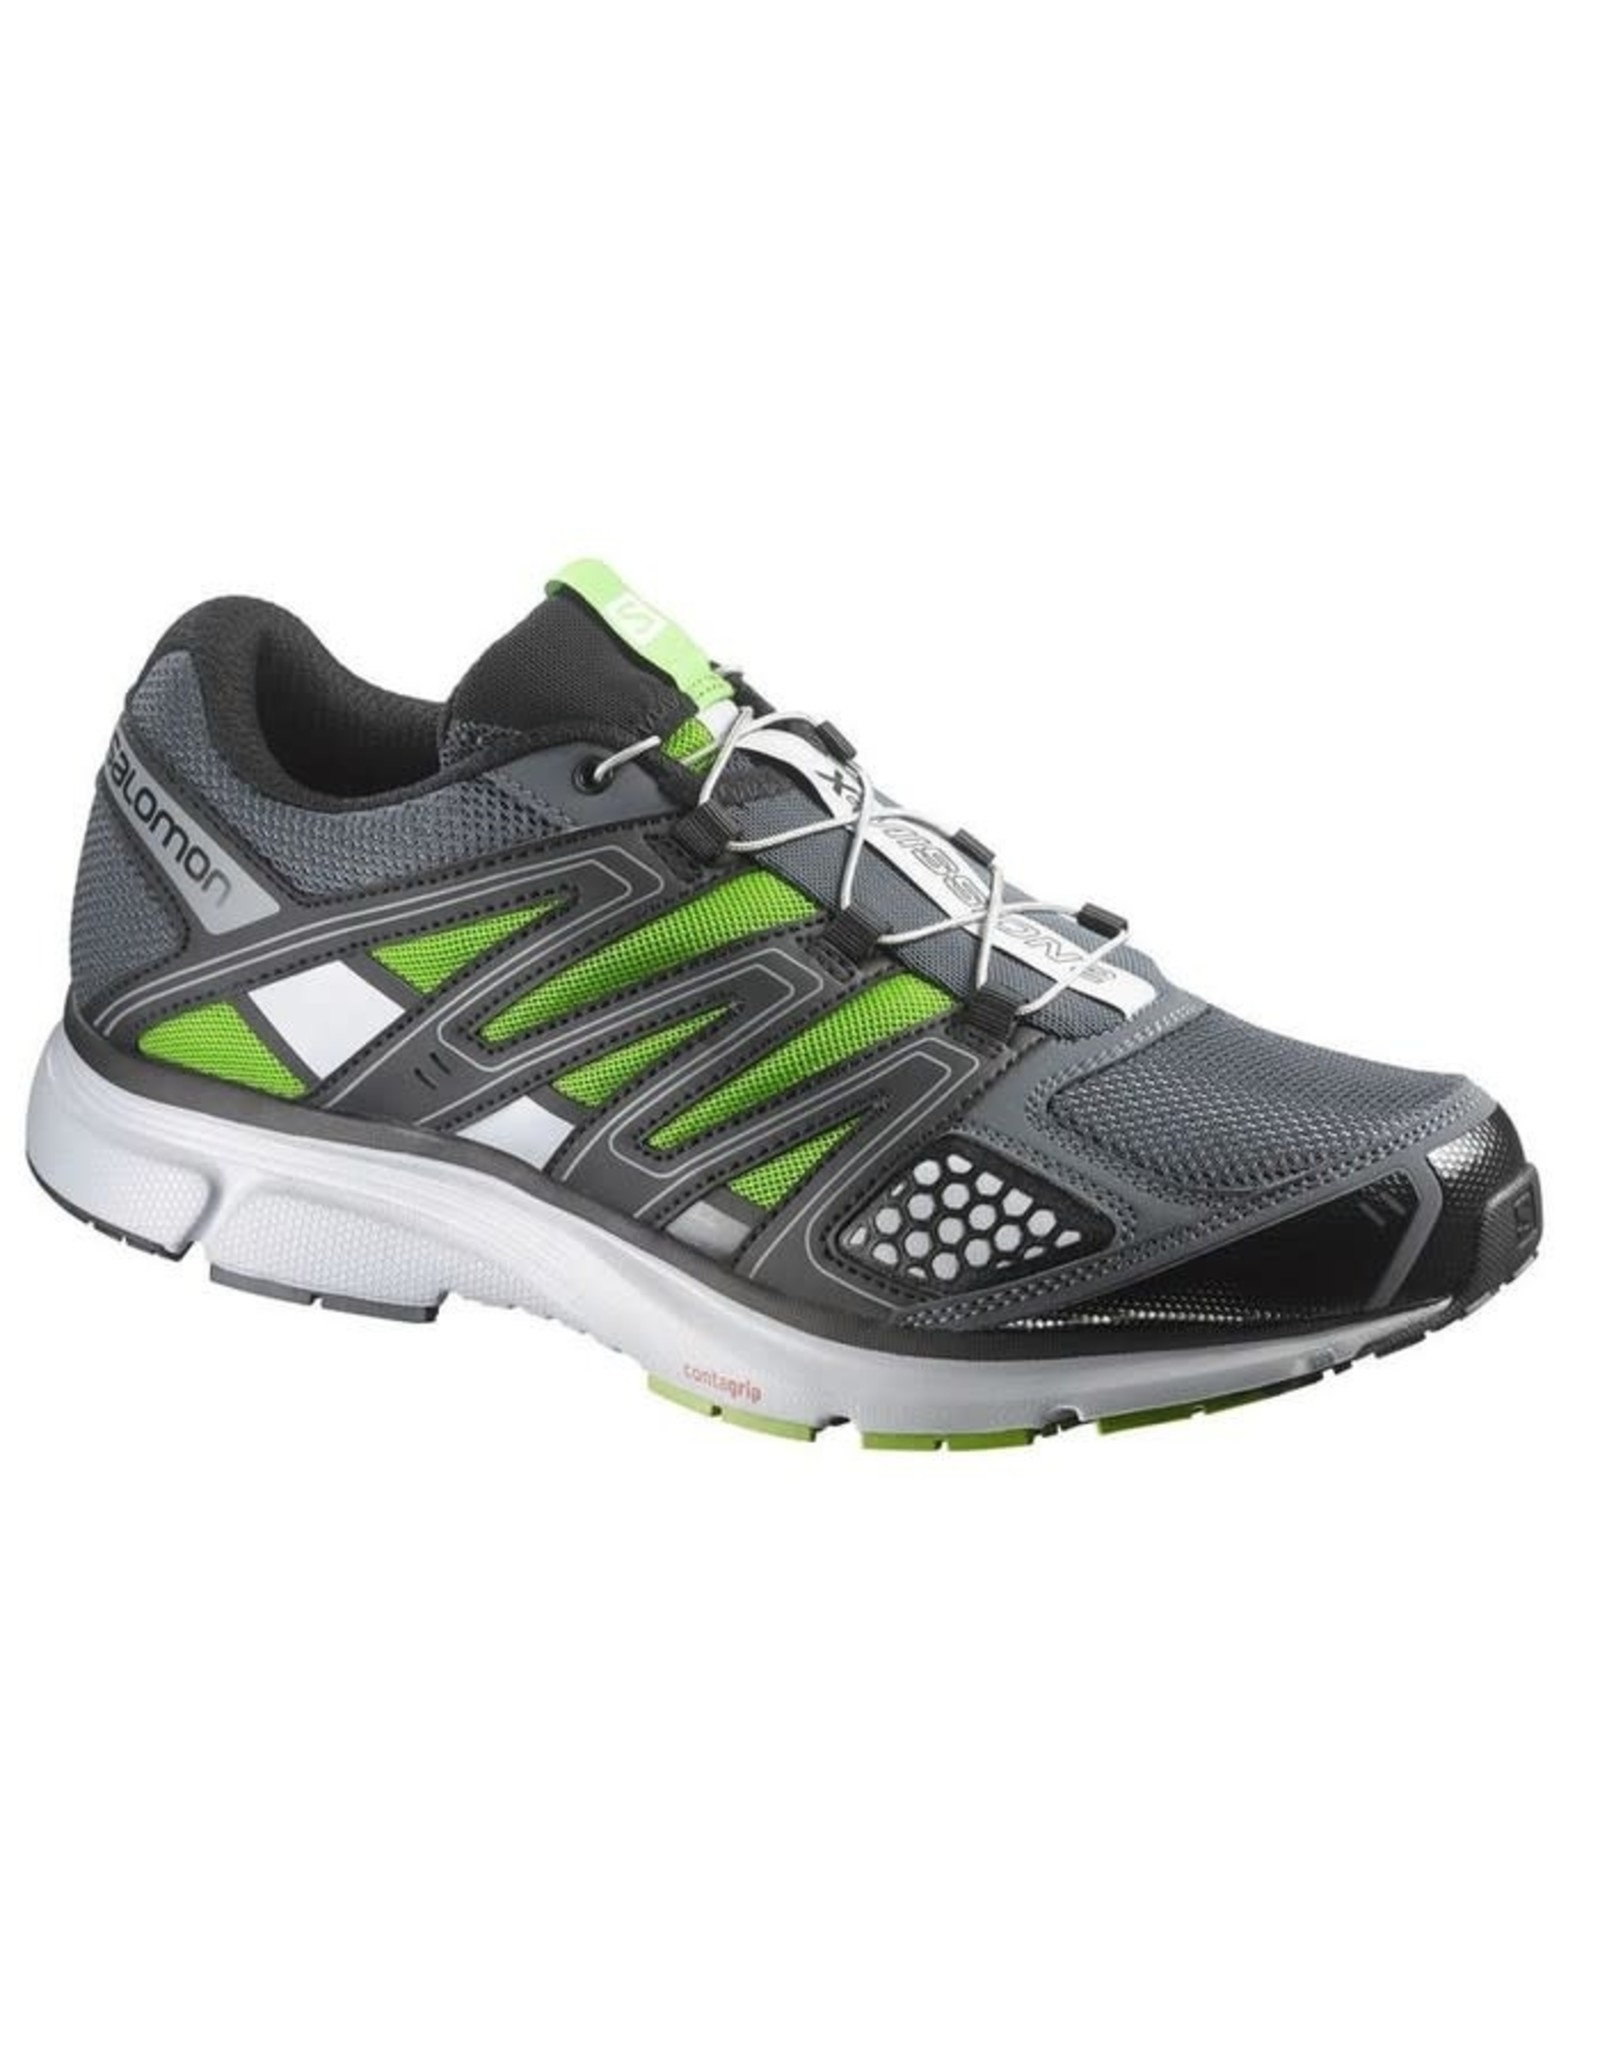 Salomon Salomon X-Mission 2 Men's